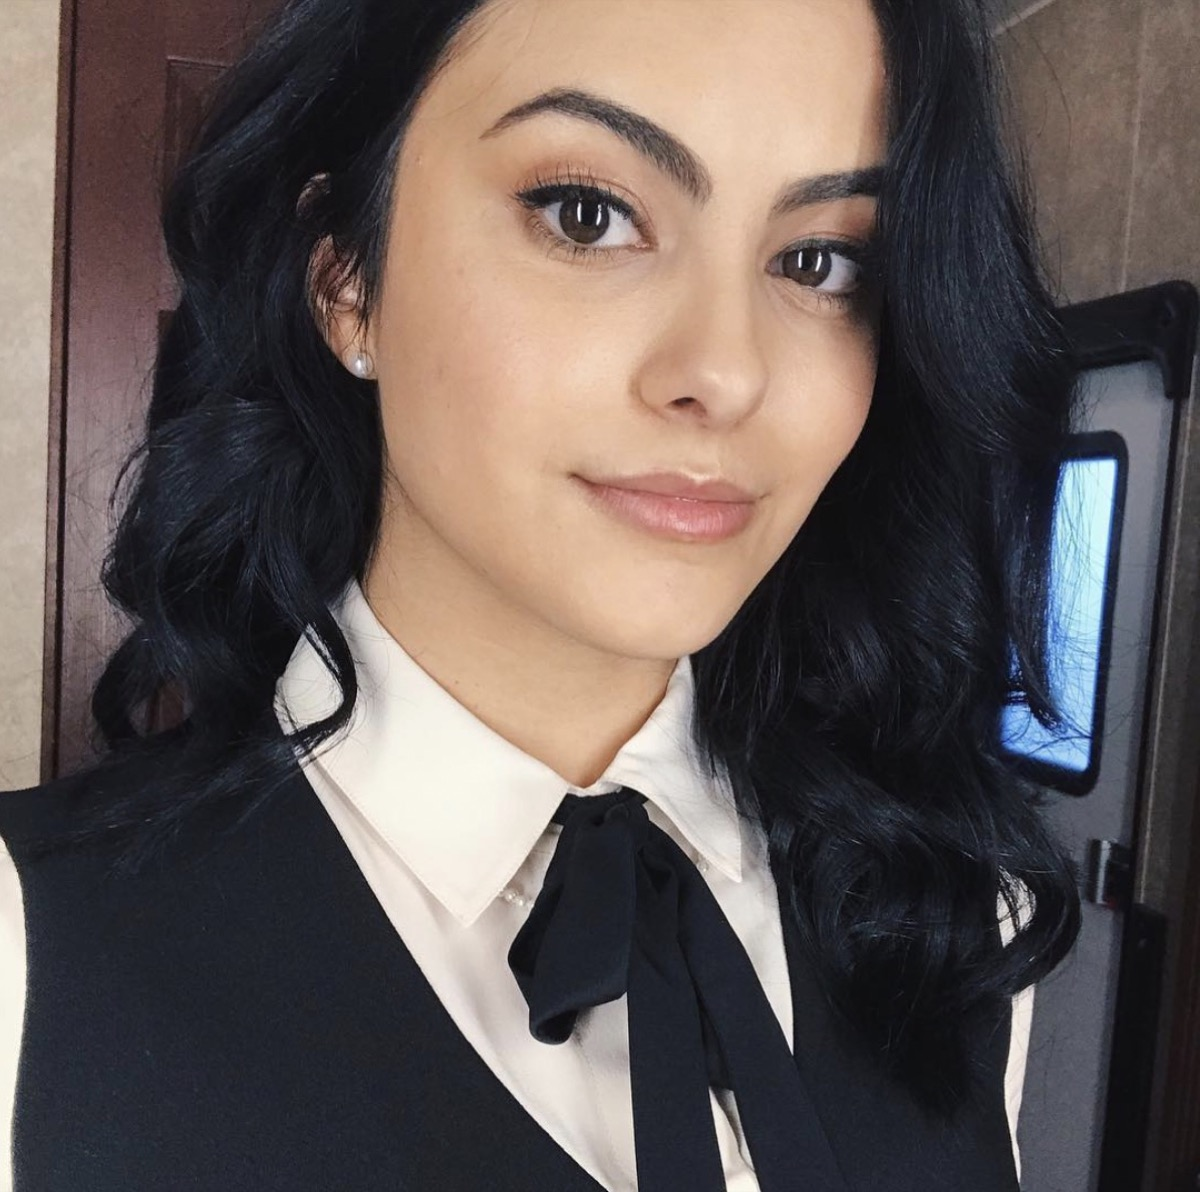 camila mendes wearing white collared shirt and black bow tie